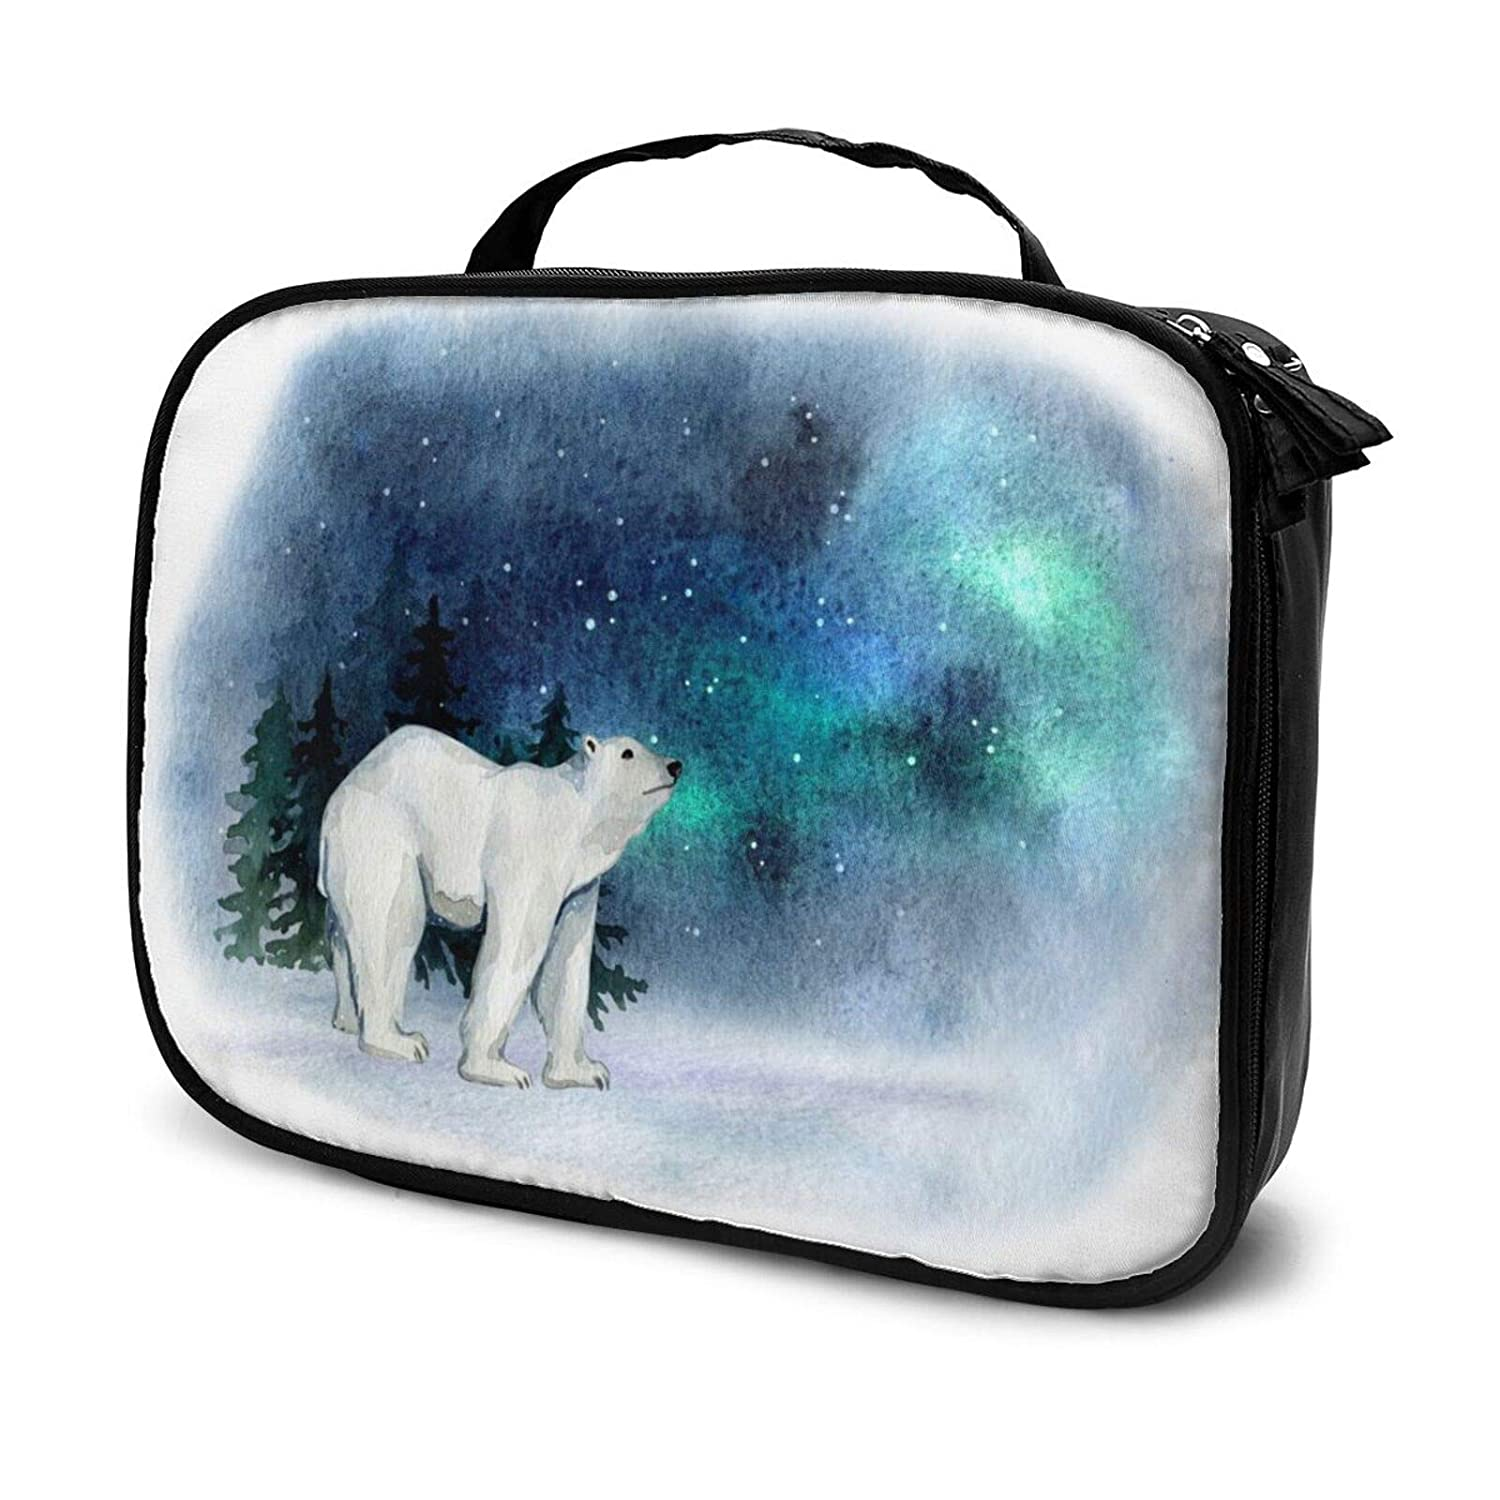 Watercolor Polar Bears Cosmetic Bag Large Capacity Toiletry Bag for Women Portable Travel Square Makeup Bag The best gift for women(9.8x 3.15x 7.5)